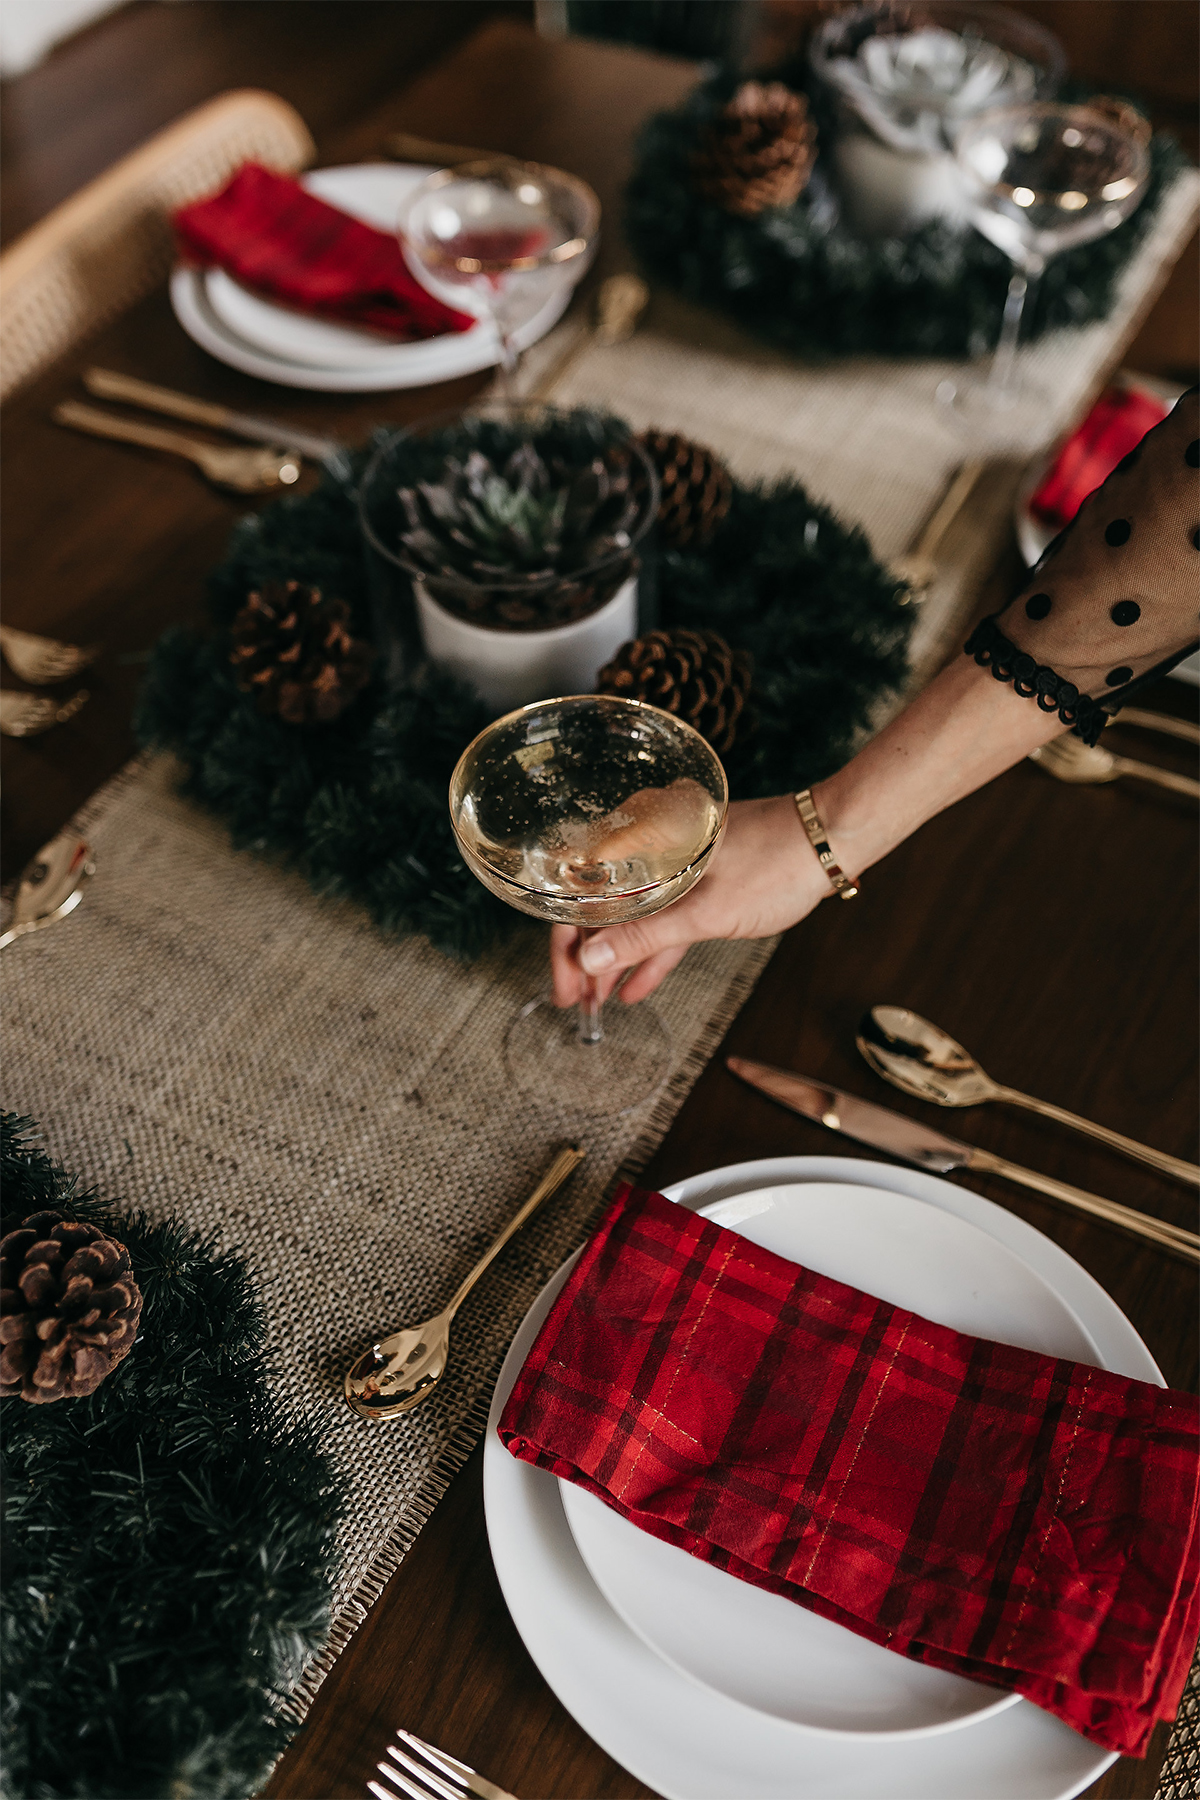 Fashion Jackson Christmas Tablescape Red Plaid Napkins White Dinnerware Gold Flatware Gold Champagne Flutes Wreath Pine Cone Centerpiece 5